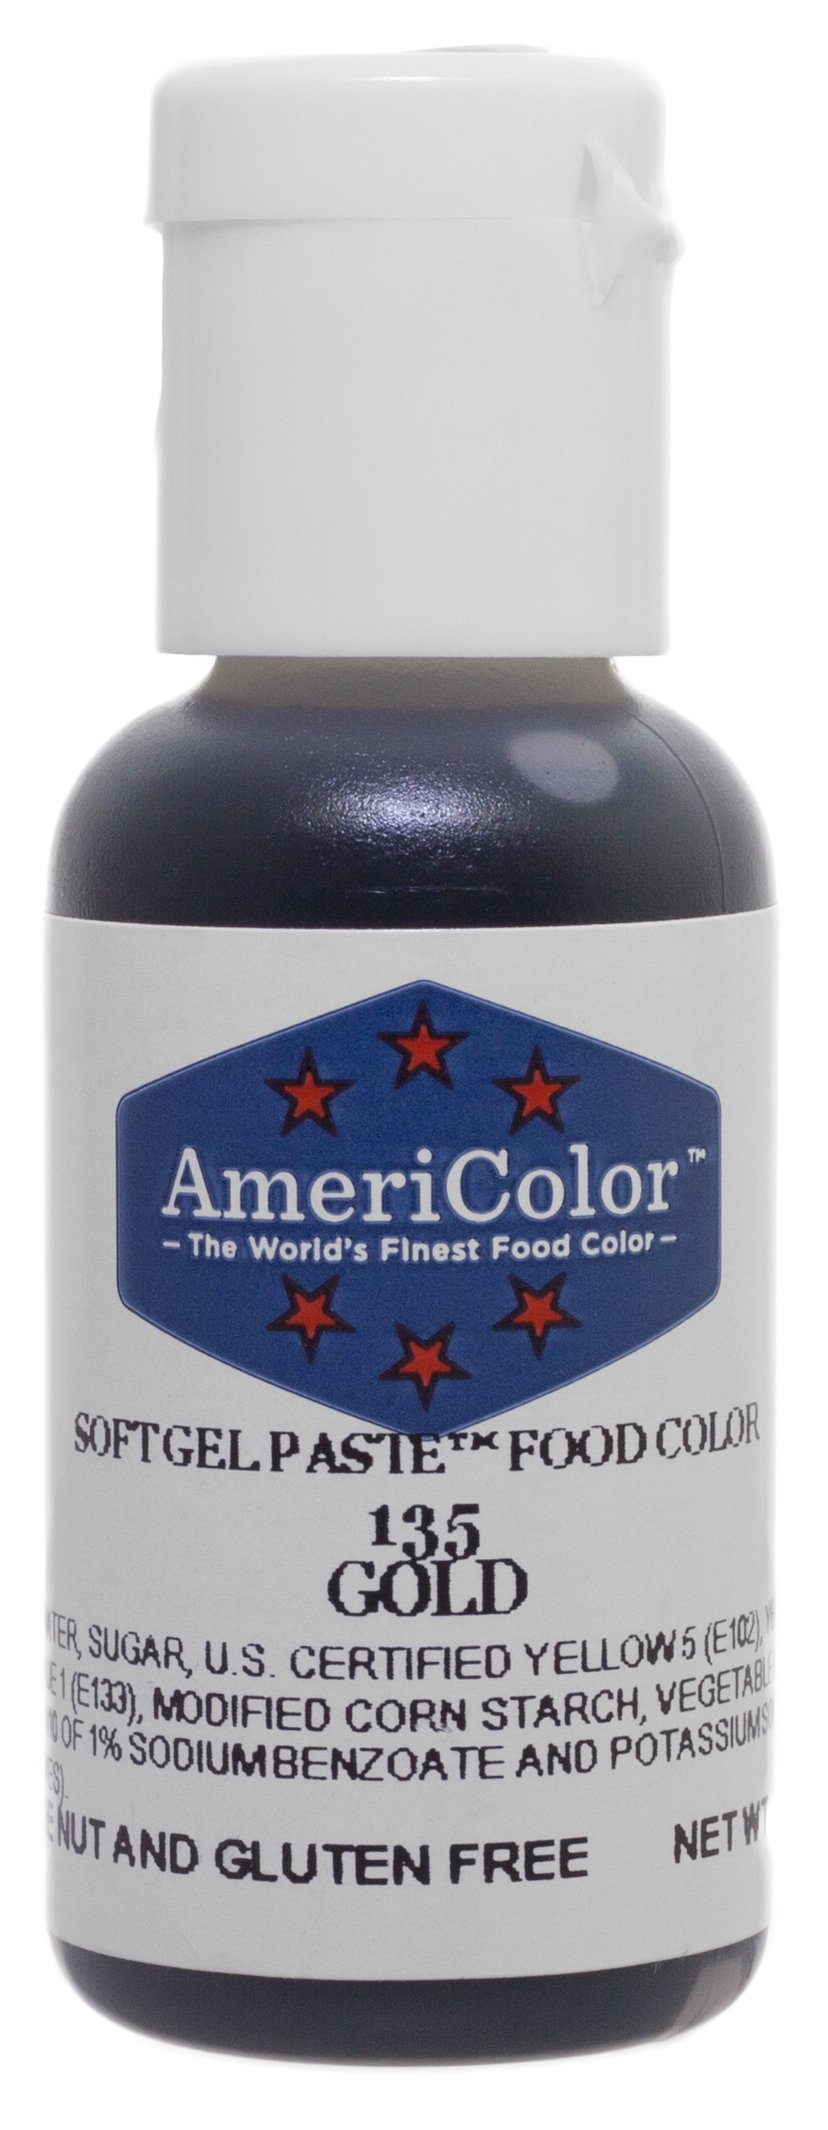 AmeriColor Soft Gel Paste - Gold Food Coloring, .75 Ounce